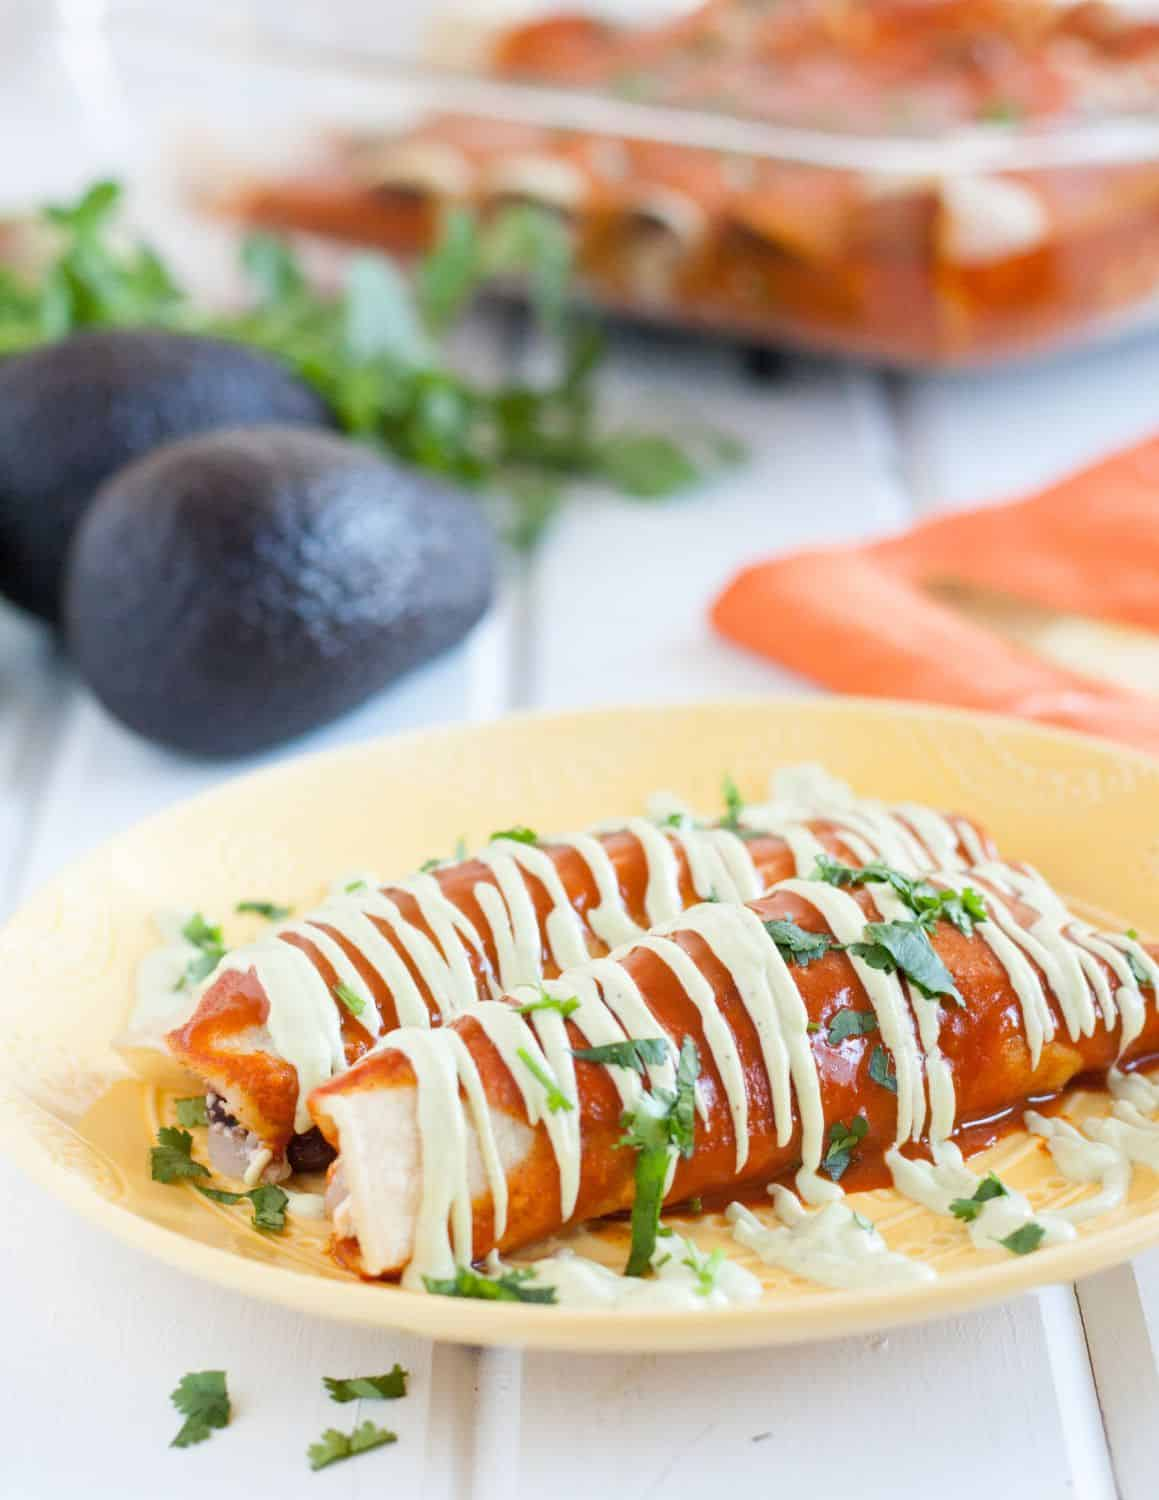 Vegan breakfast enchiladas! A delicious, savory vegan breakfast recipe that's so good, even